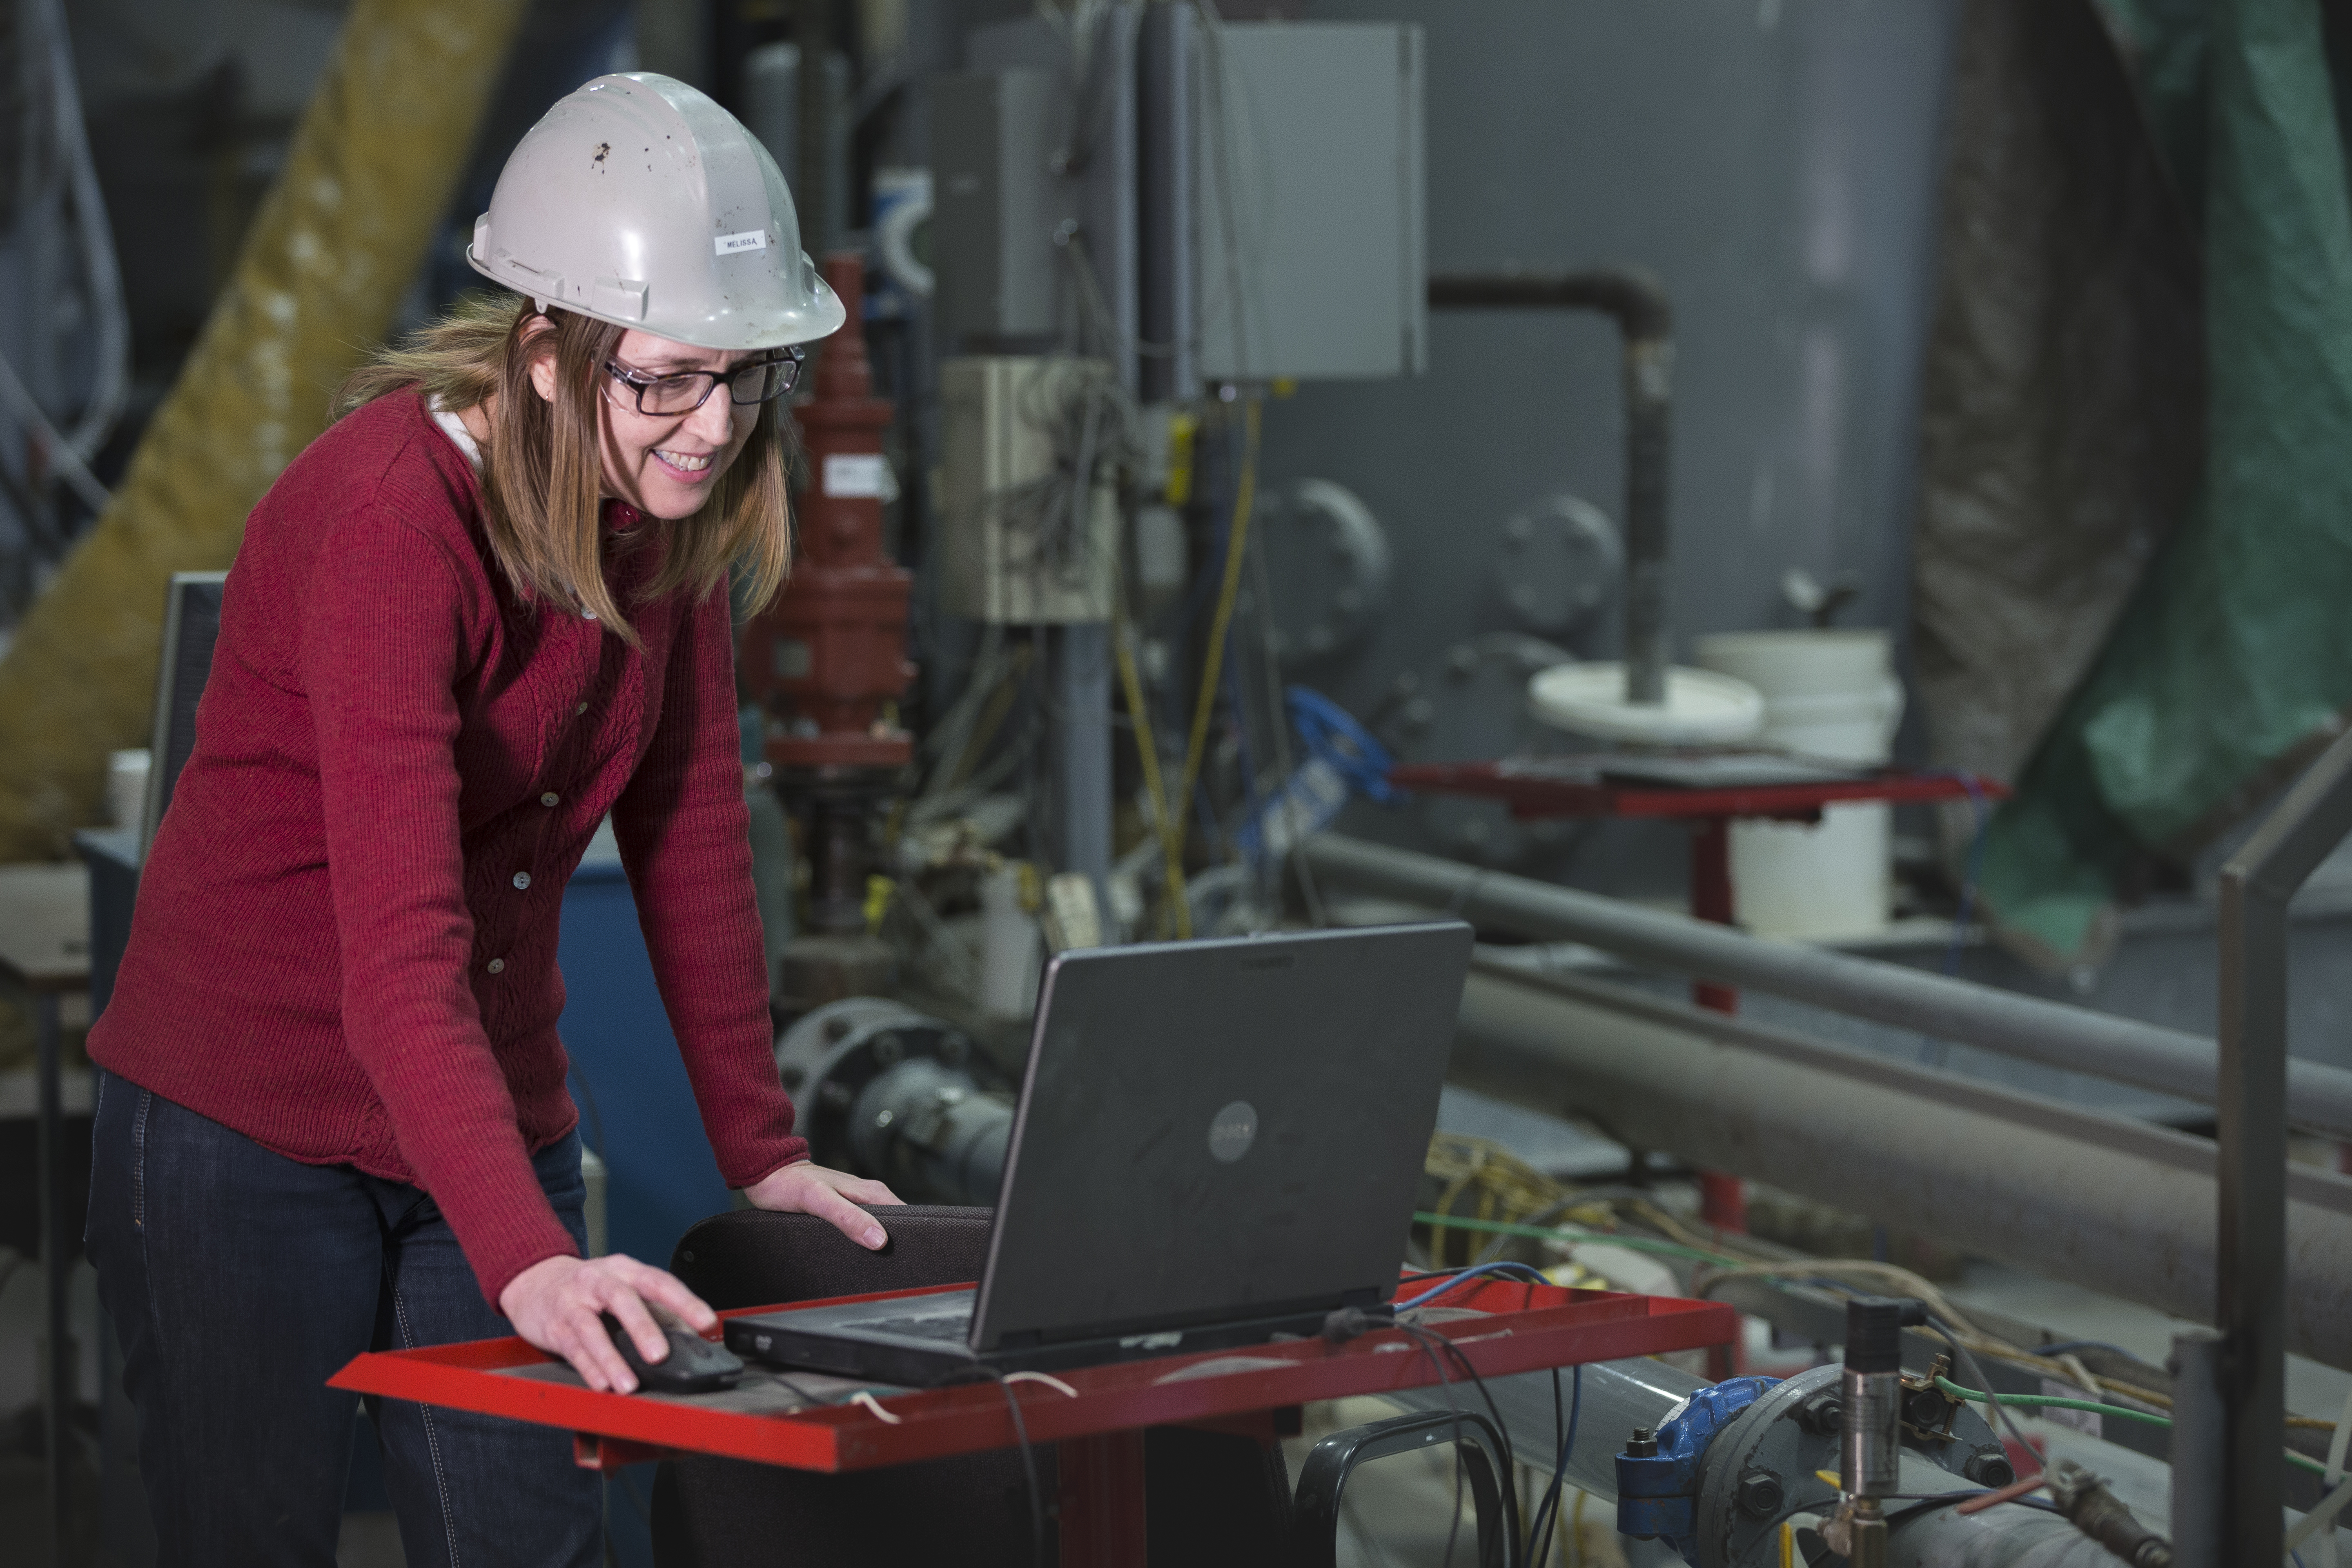 female engineer working at computer in lab